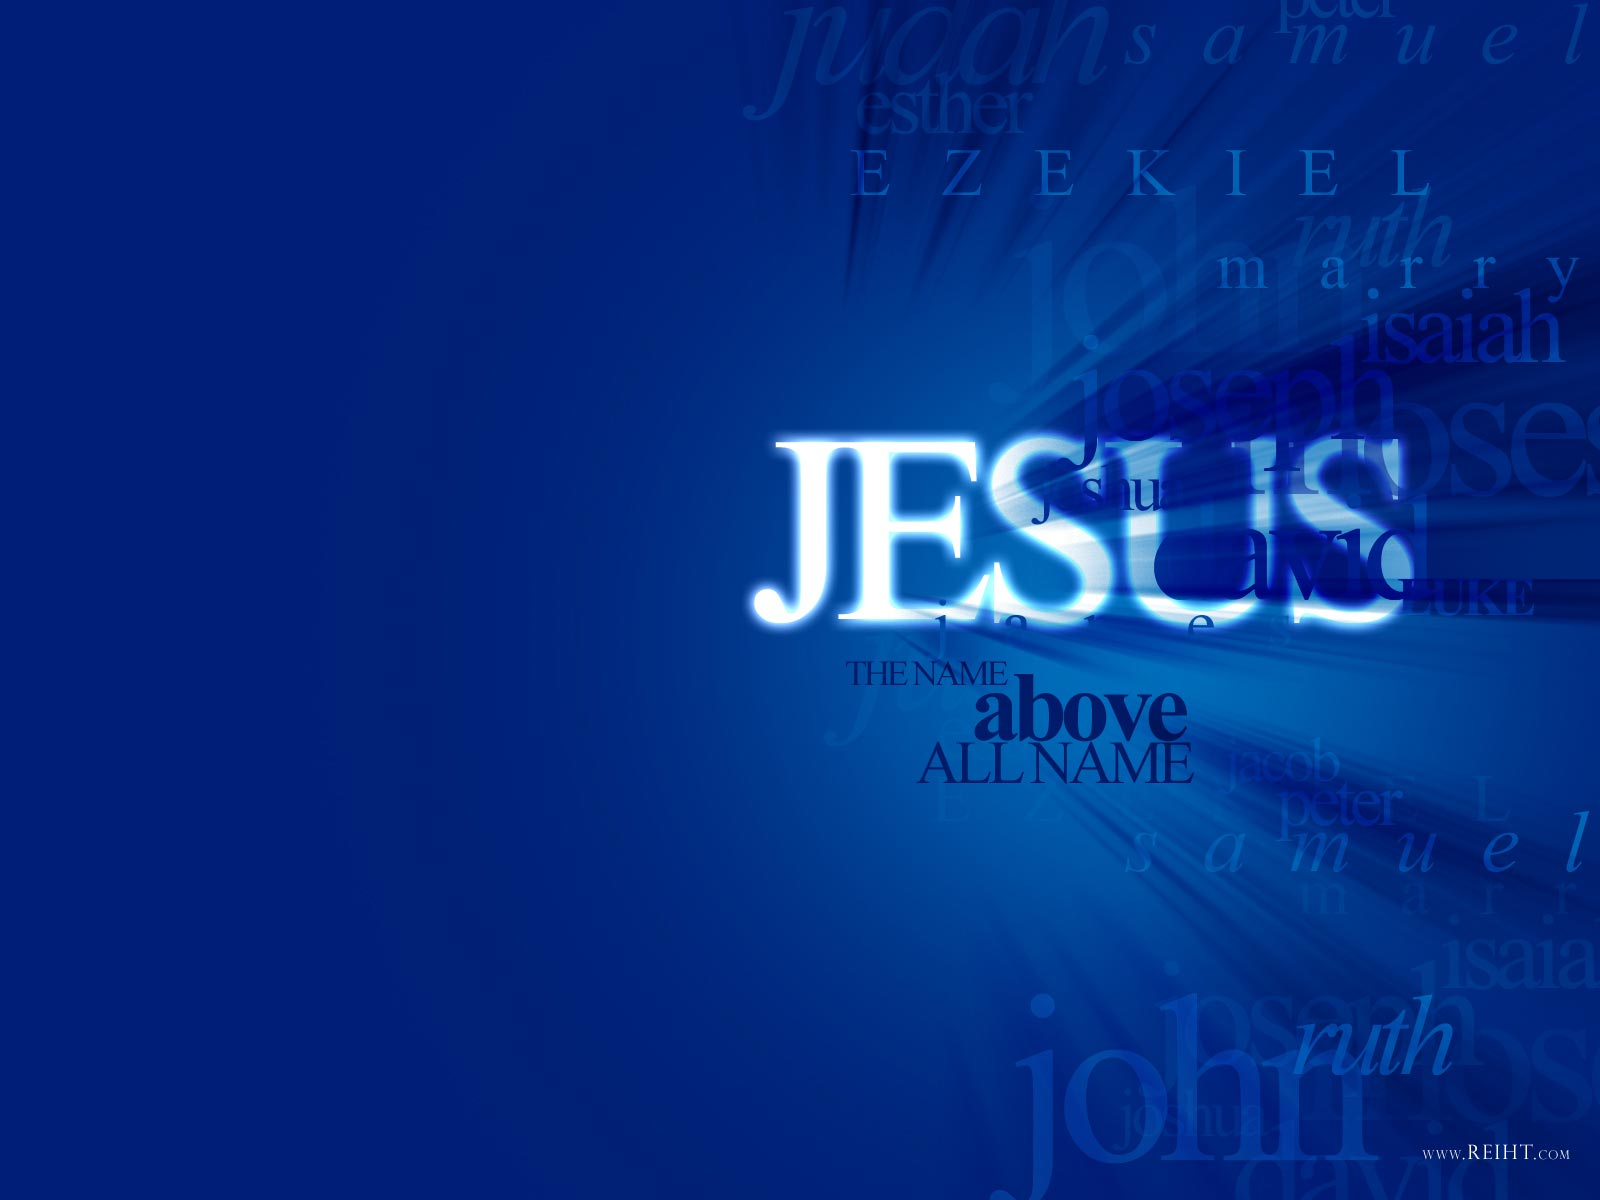 Jesus the name above all name reiht jesus the name above all name for easter powerpoint backgrounds toneelgroepblik Image collections